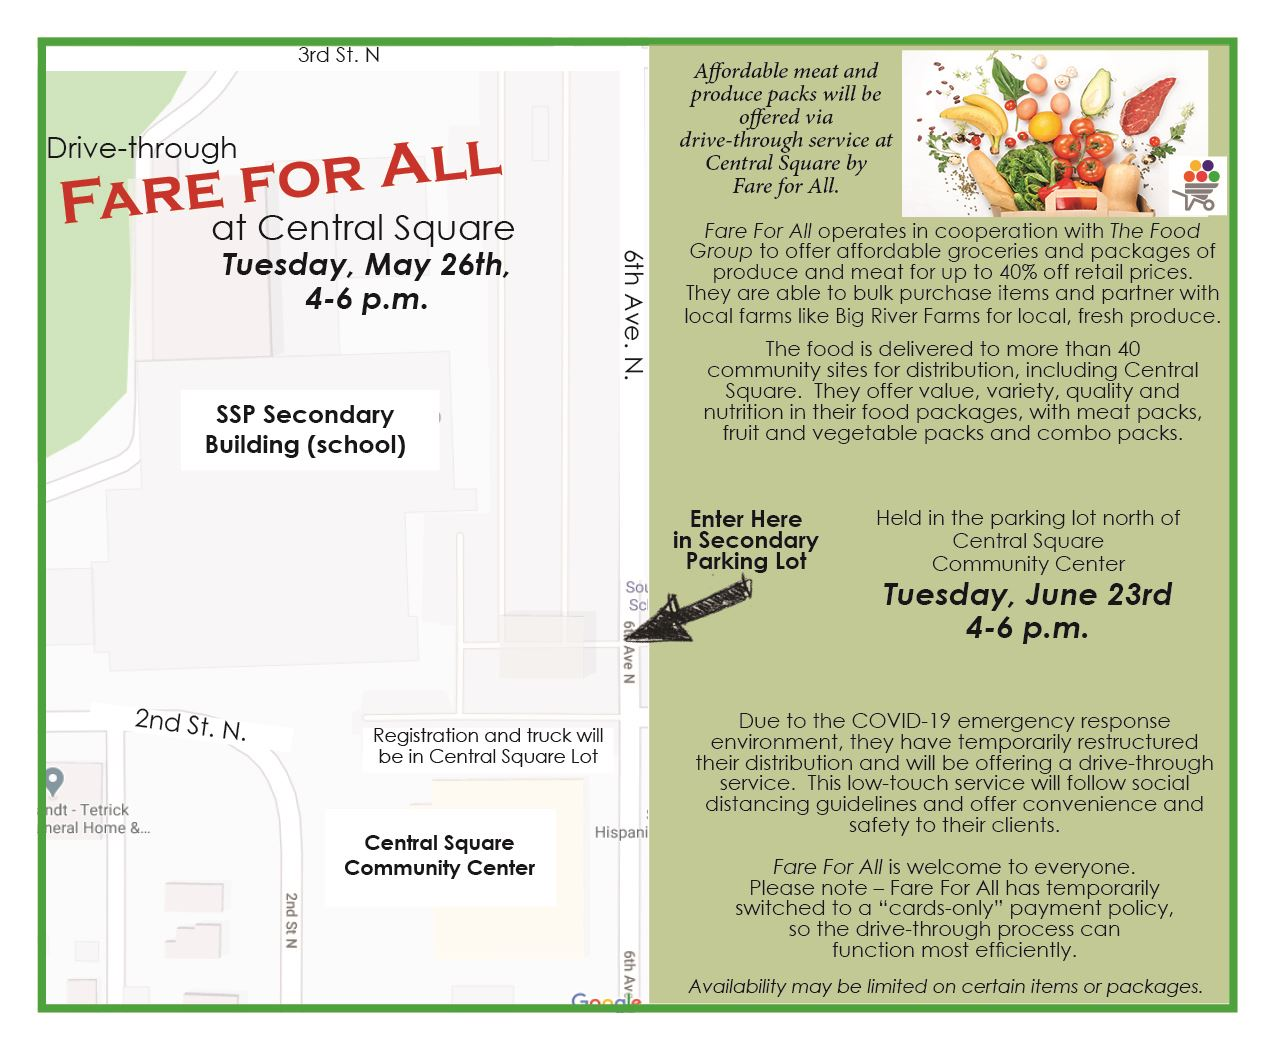 Fare for All June 23, 2020